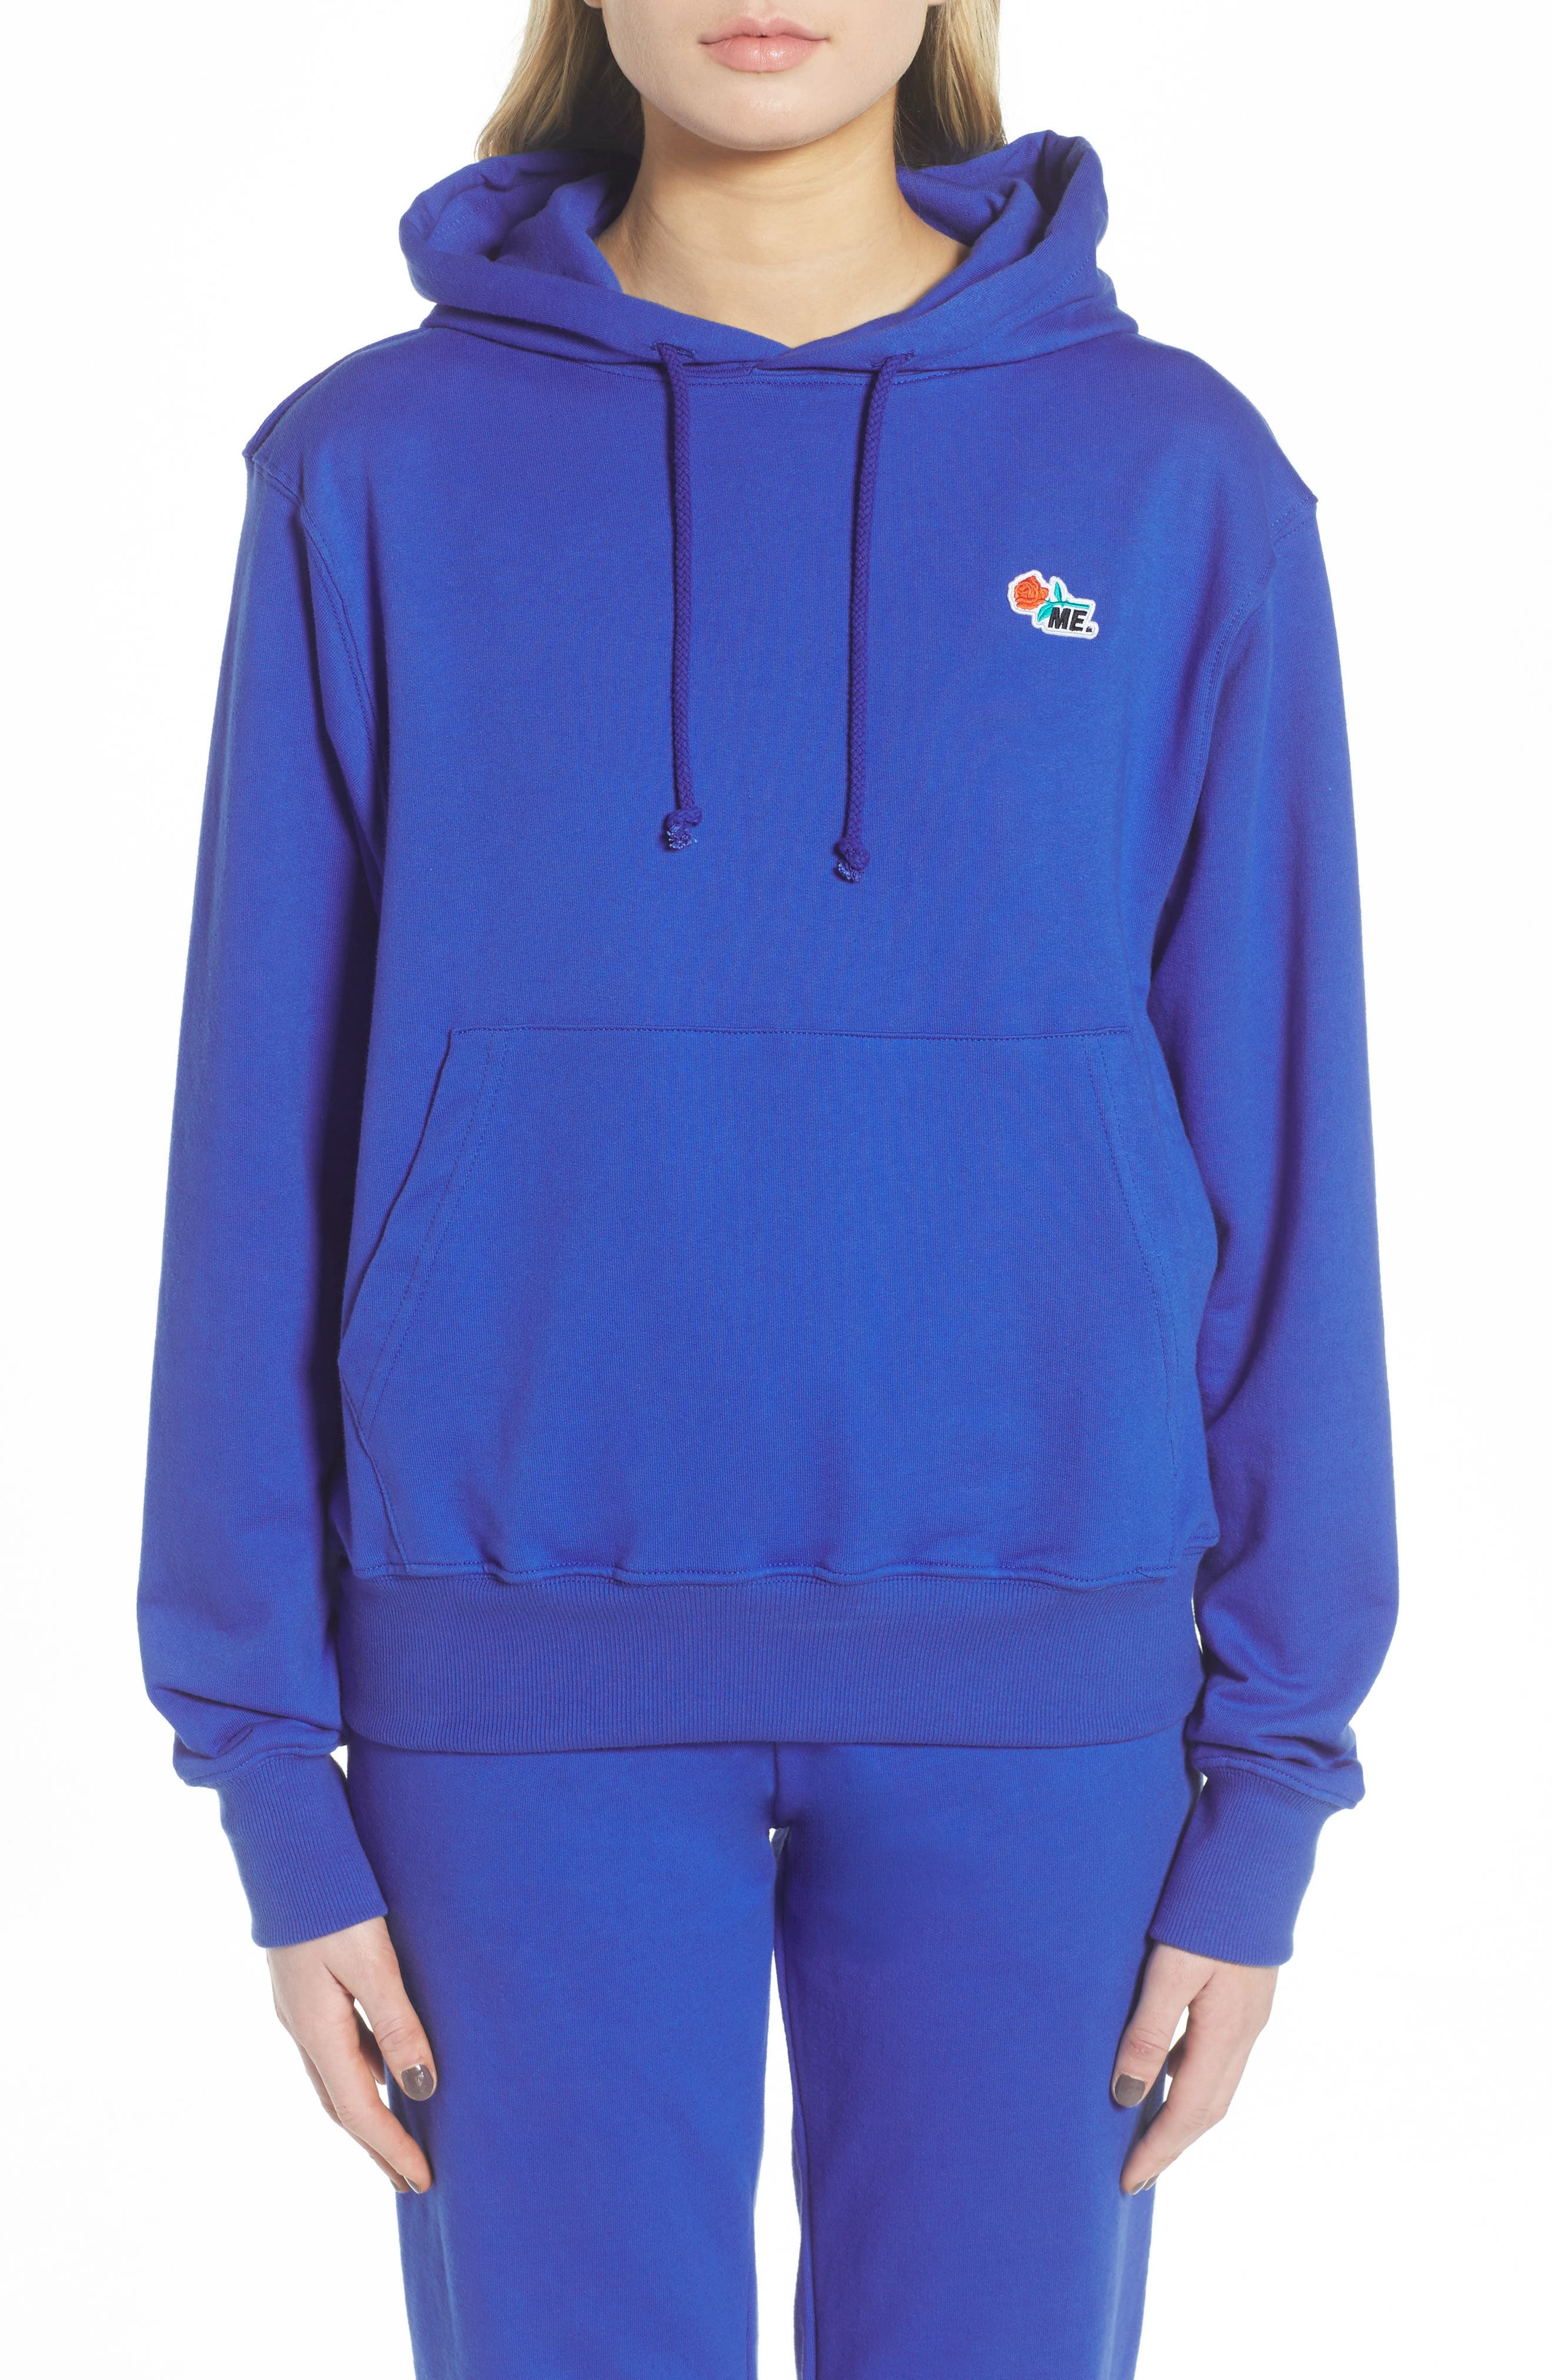 ME. Rose Pullover Hoodie,                         Main,                         color, Royal Blue